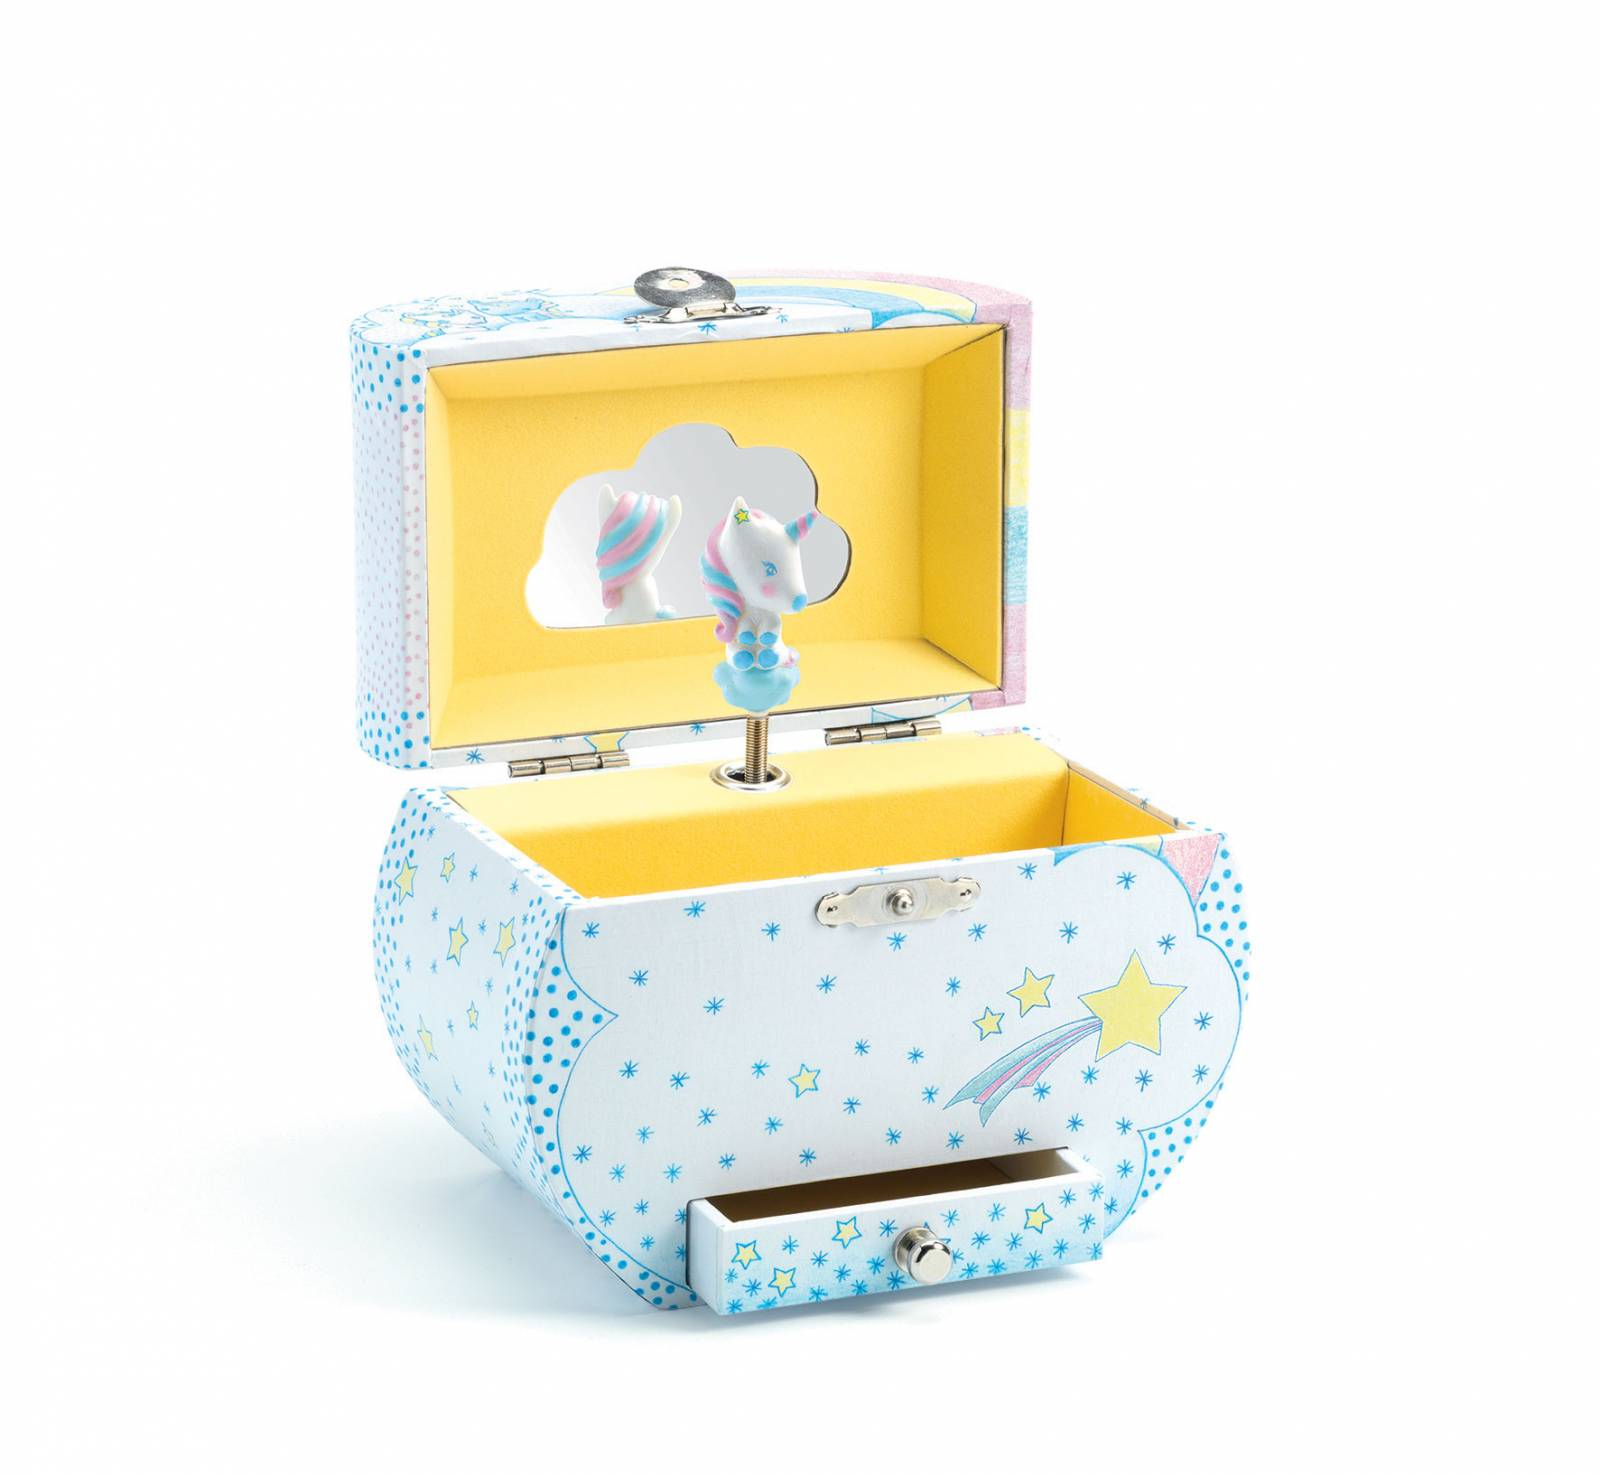 Unicorn's Dream Music Box By Djeco